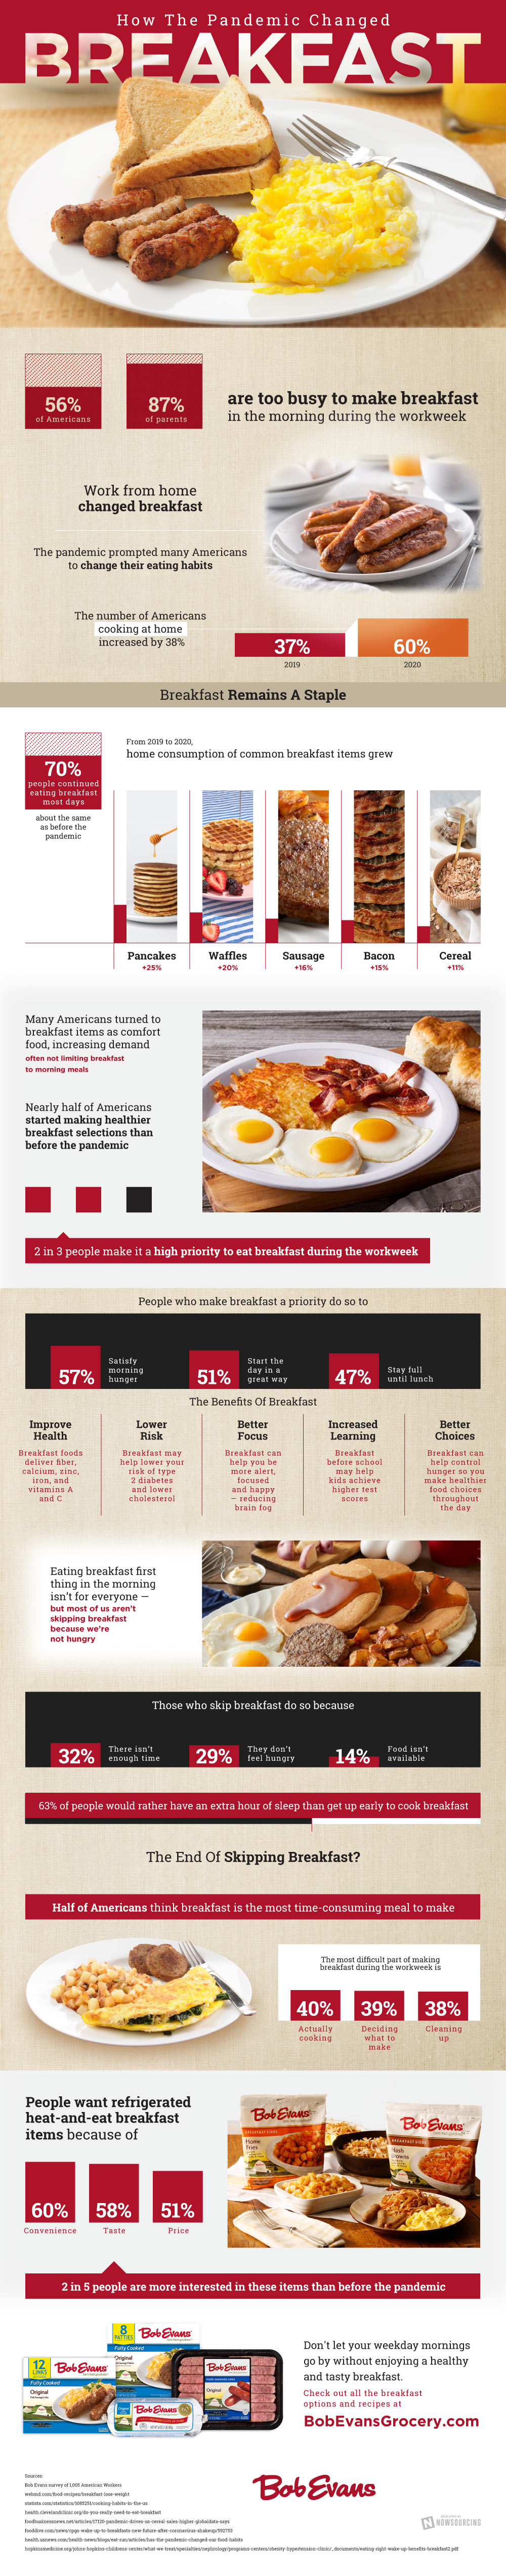 How the Pandemic Changed Breakfast